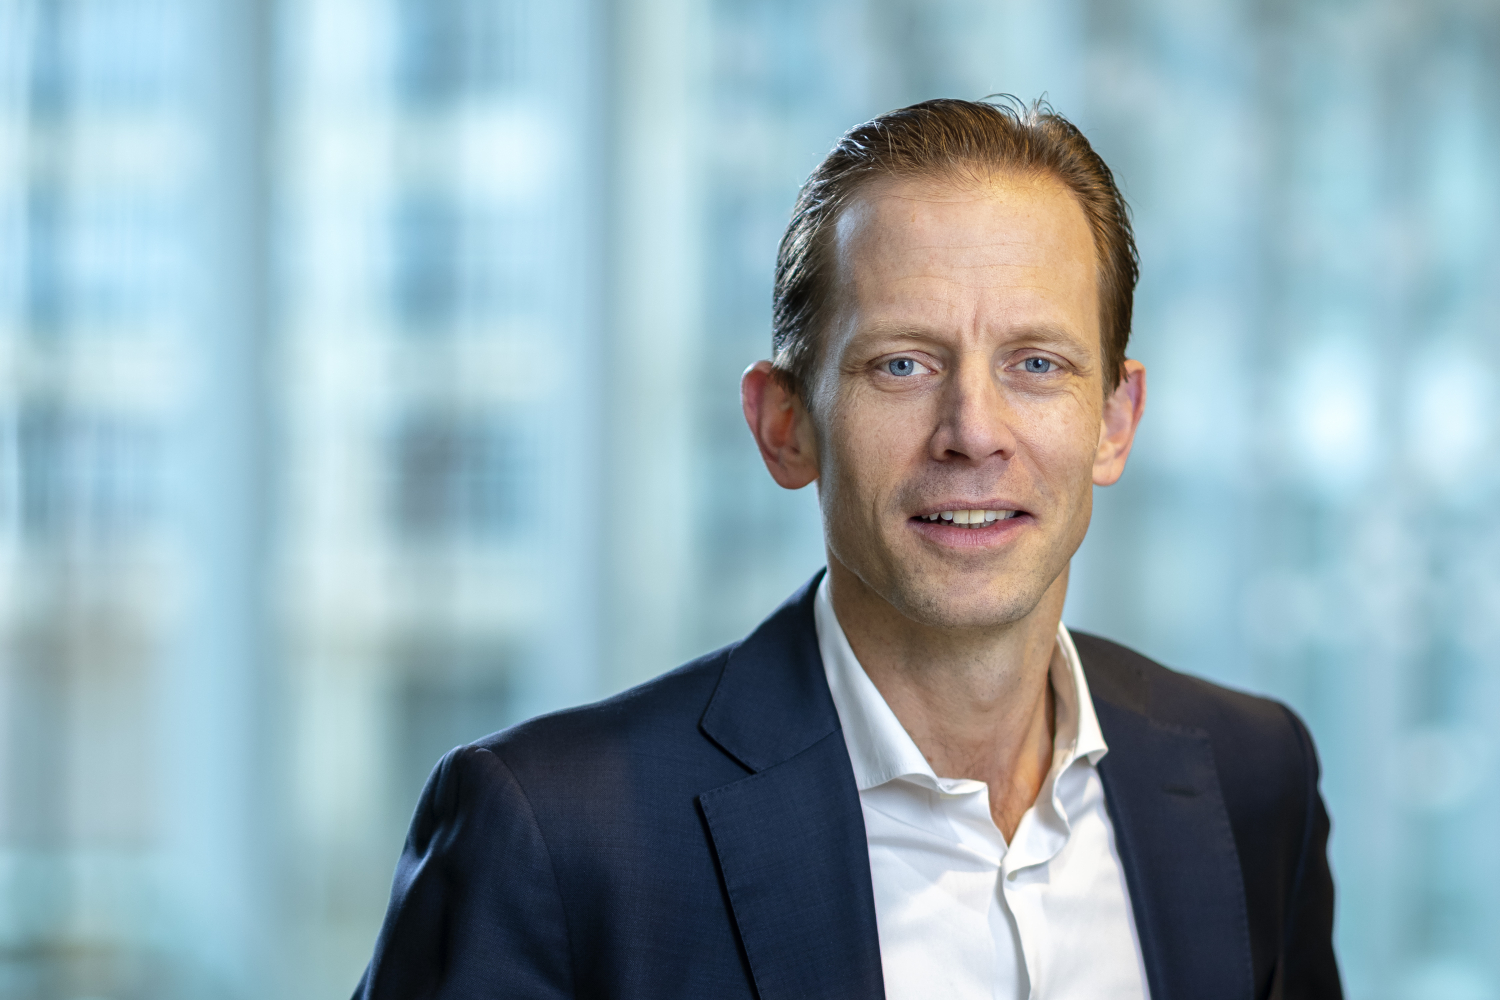 Kees Wesdorp, CEO of Precision Diagnosis part at Philips